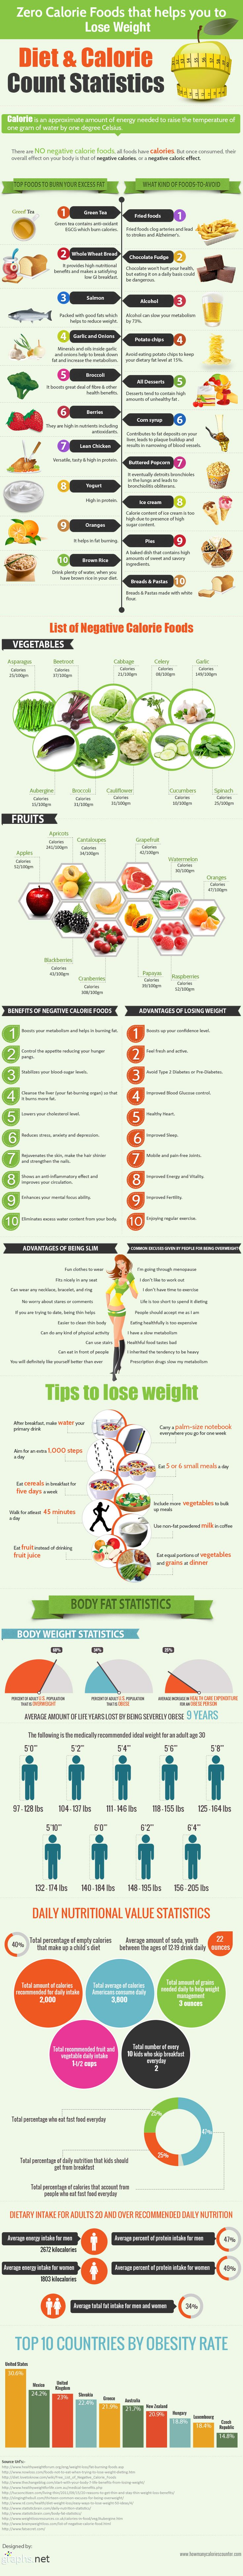 Zero-Calorie Foods That Help You to Lose Weight